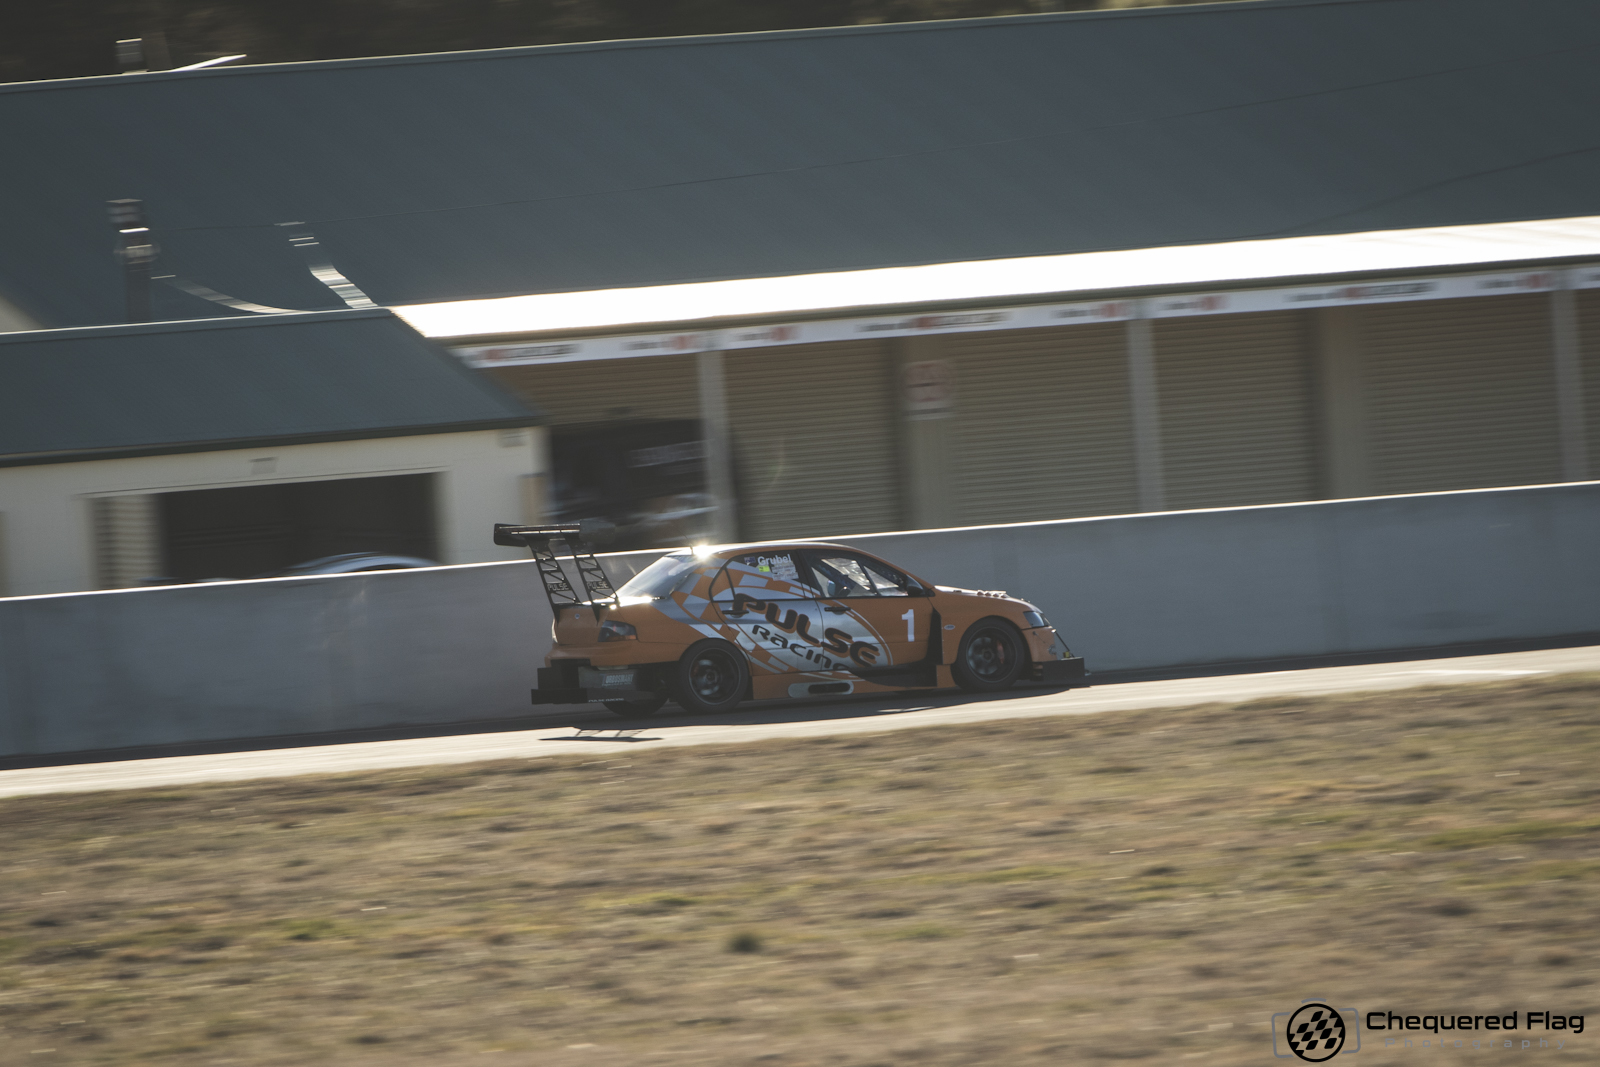 05 - Aus Time Attack - Chequered Flag